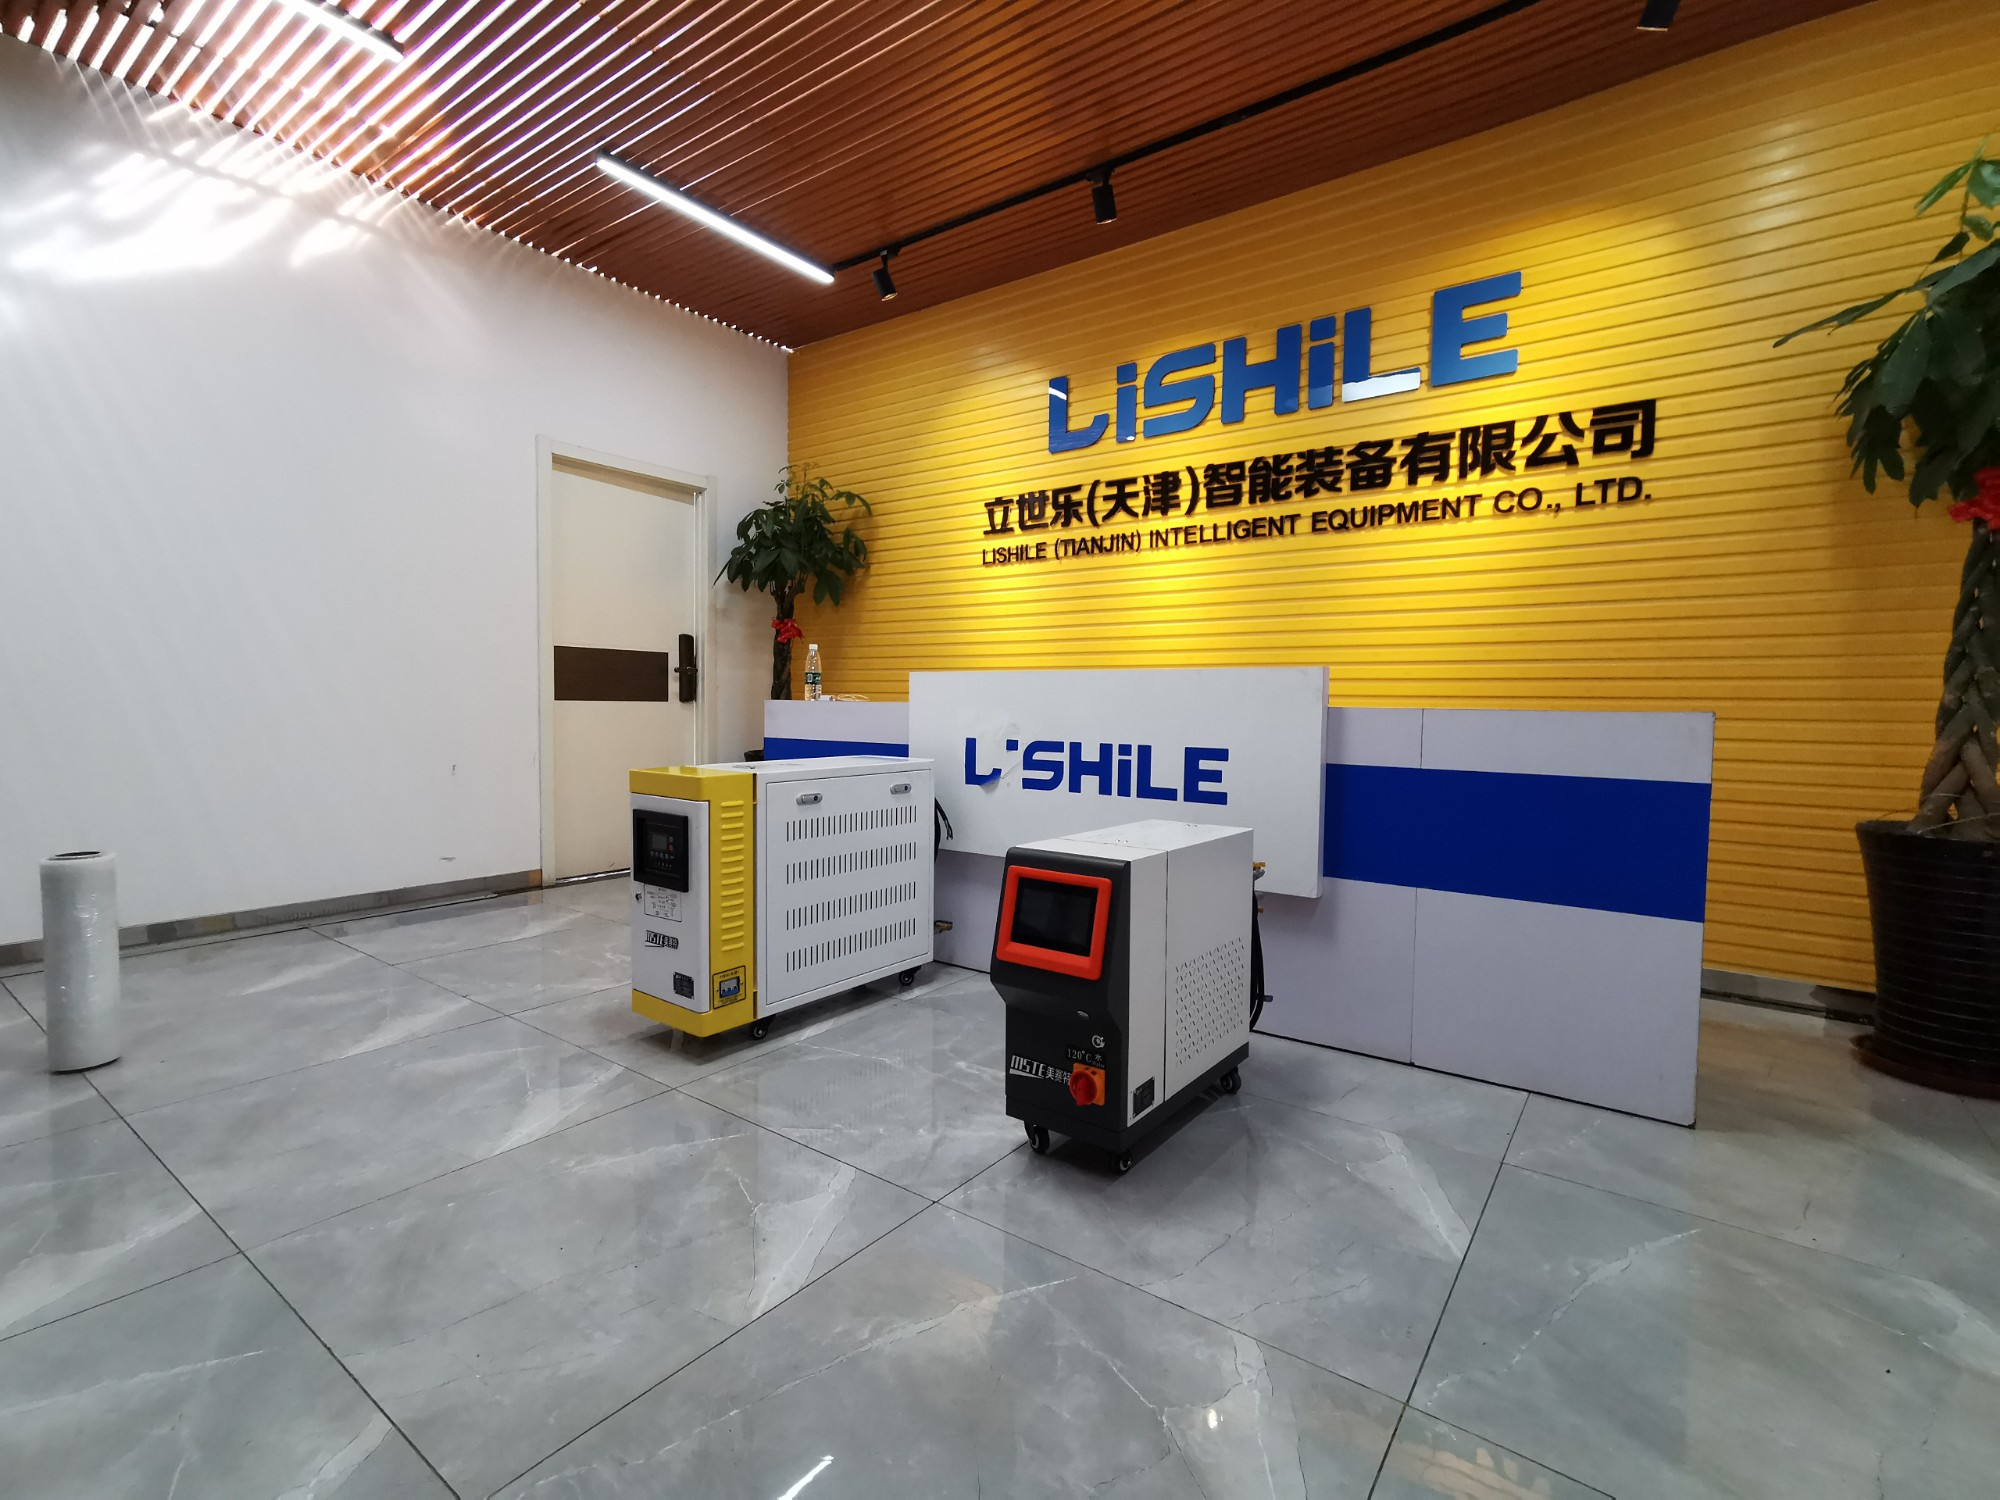 LISHILE (เทียนจิน) Intelligent Equipment Co. , Ltd.